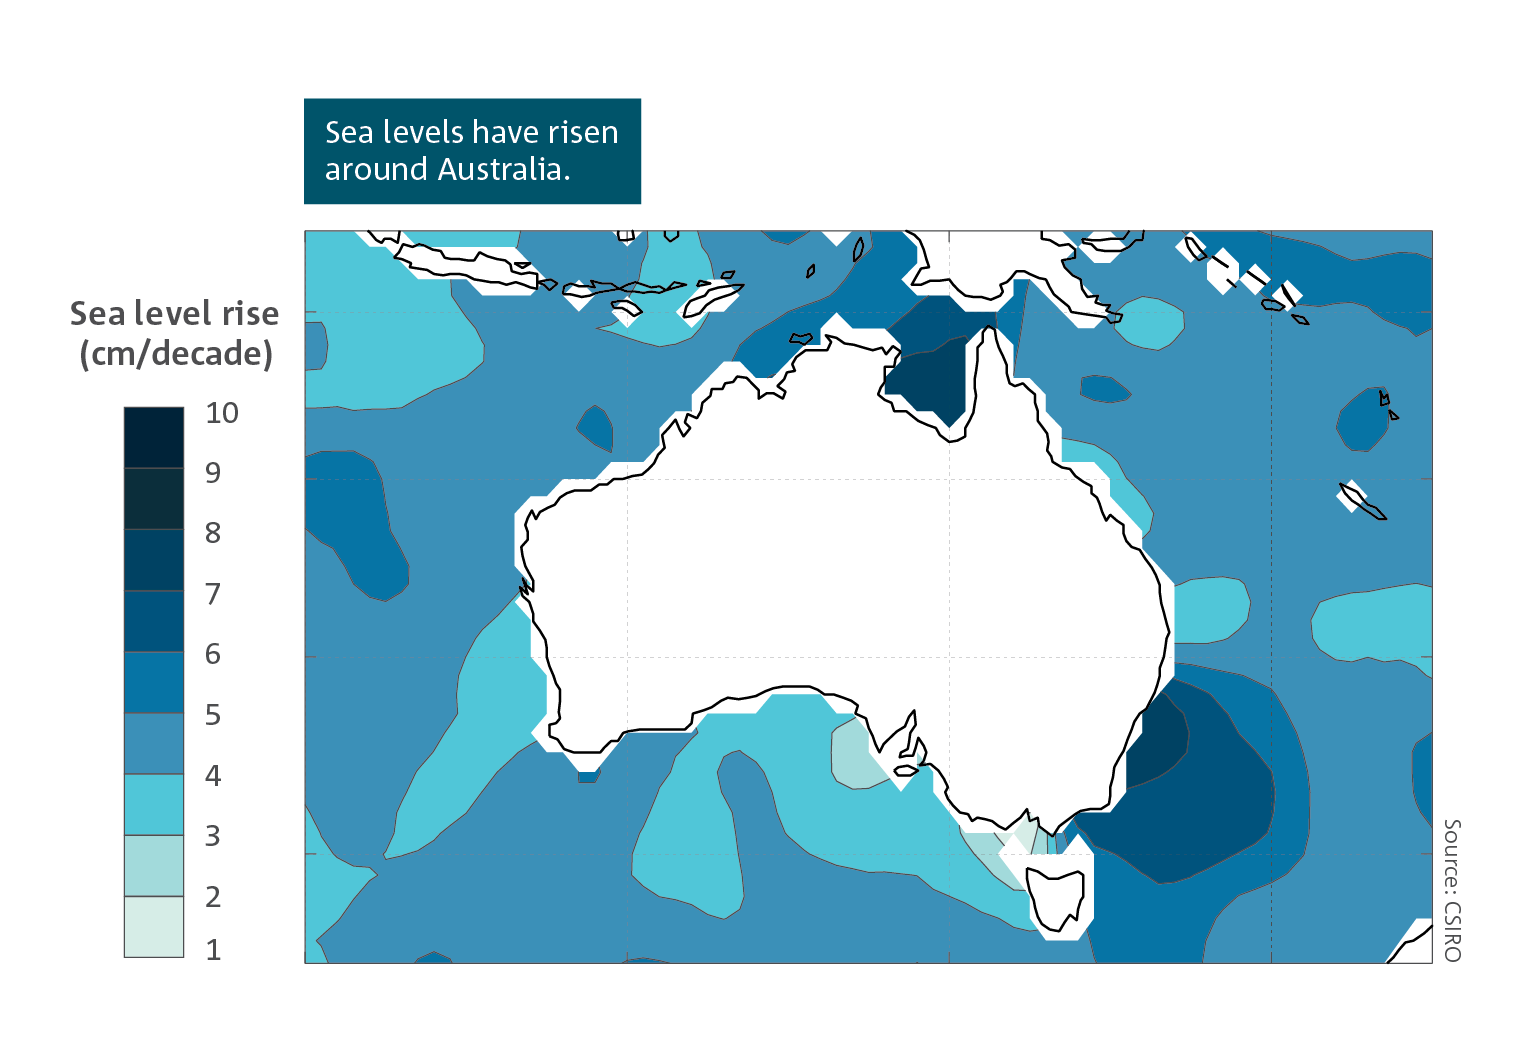 Sea levels have risen around Australia.  Spatial map of Australia which shows the rate of sea level rise measured using satellite altimetry, from 1993 to 2019.   Sea level rise (cm/decade) appears highest off the coast of the Northern Territory and New South Wales.   For a full description of this figure please contact: CSIROEnquiries@csiro.au